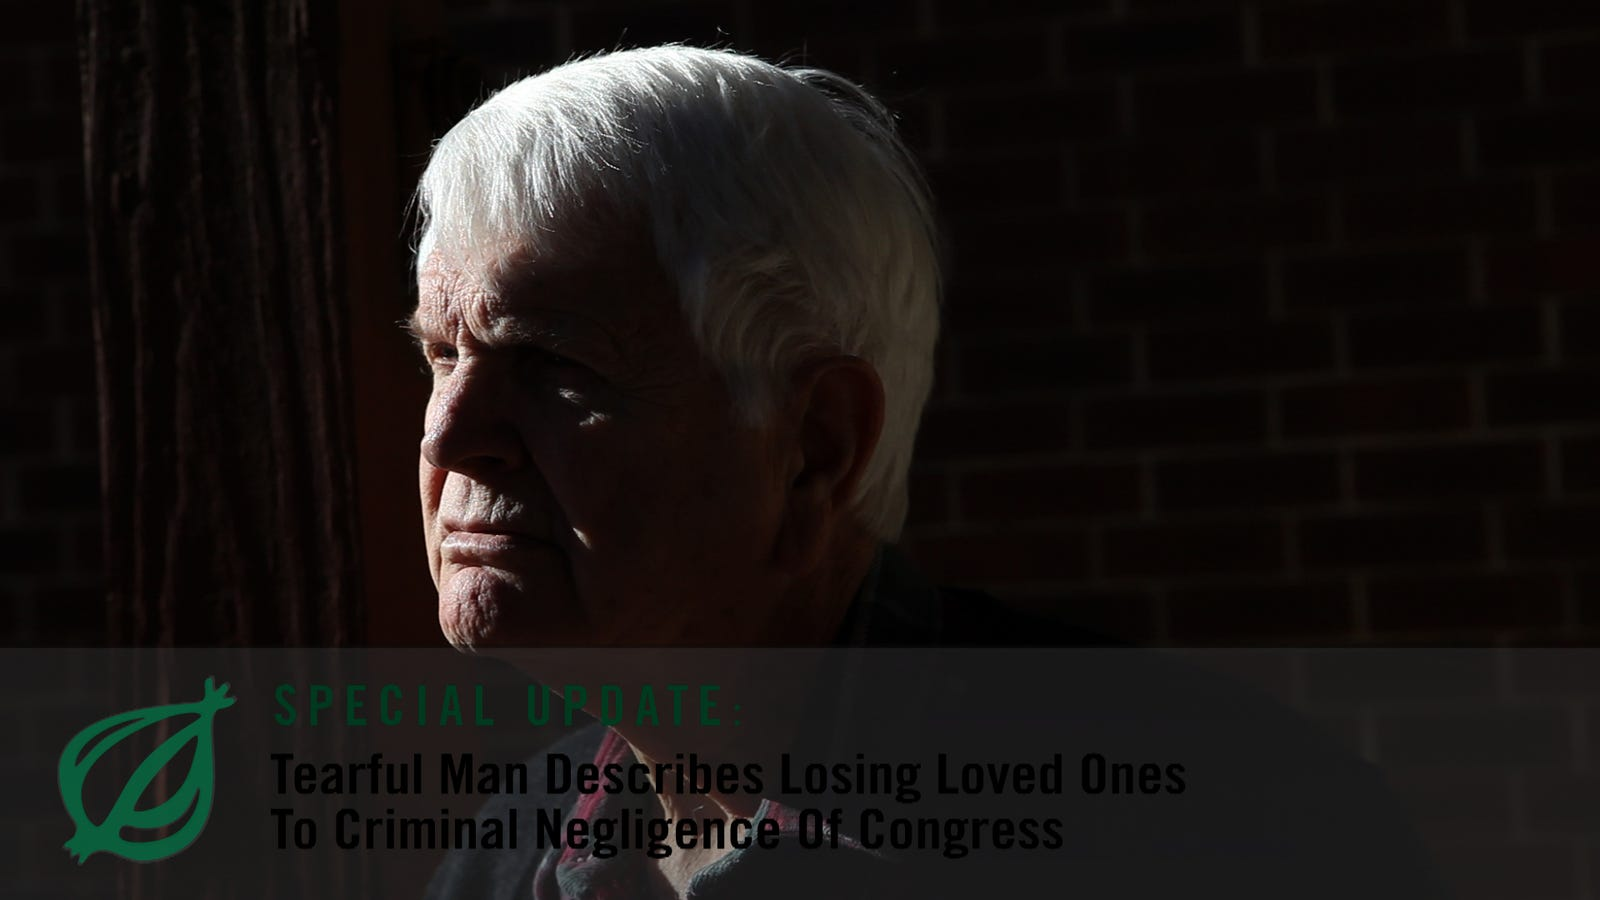 Congress Arrested On Manslaughter Charges